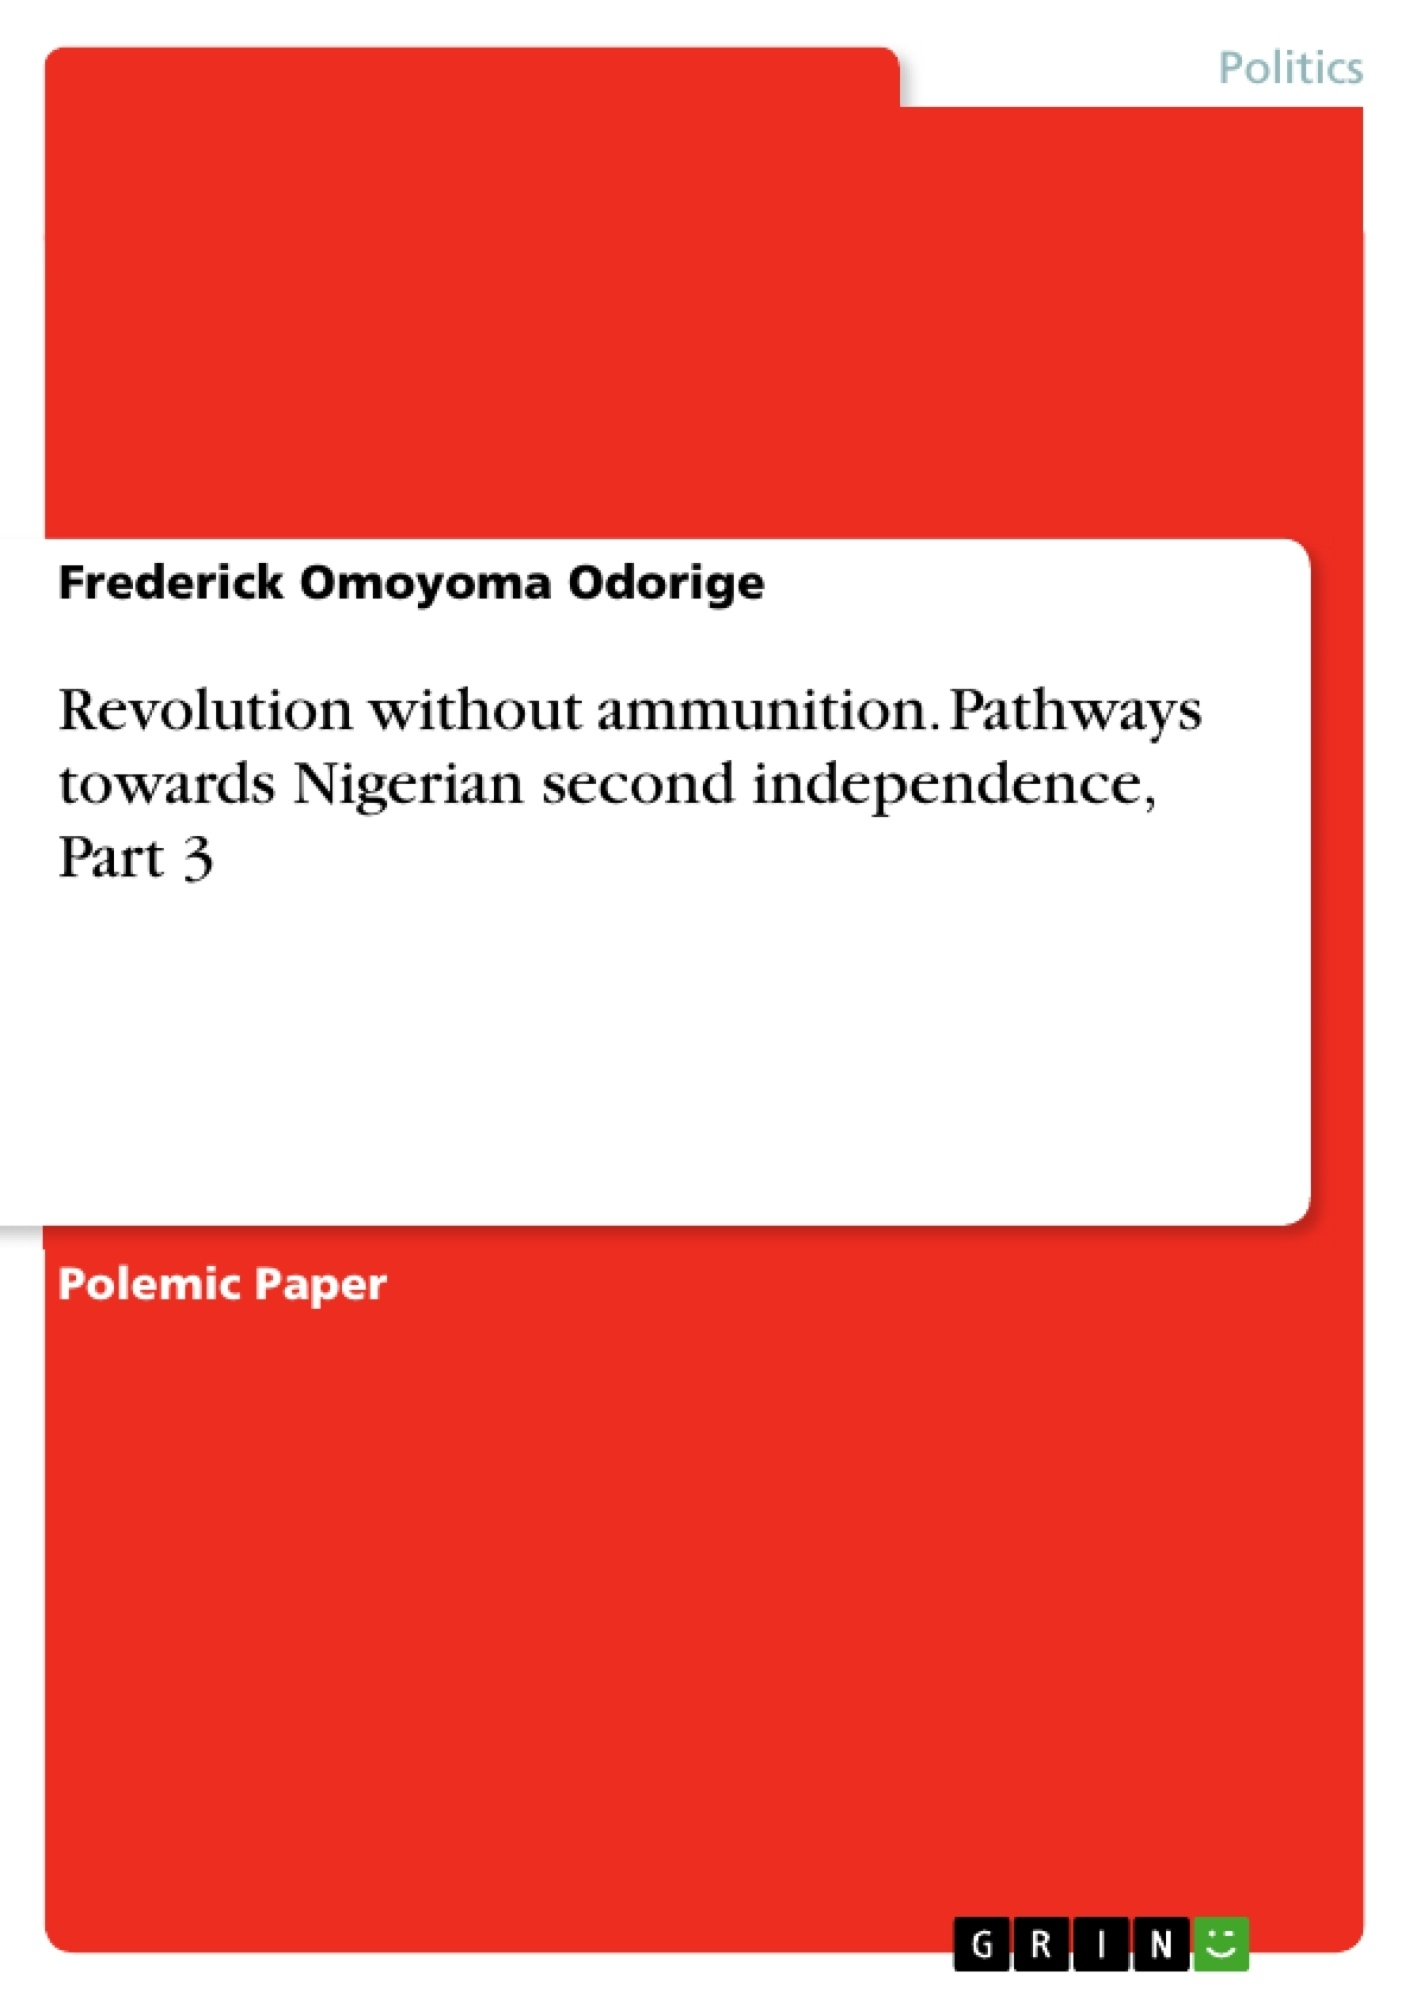 GRIN - Revolution without ammunition  Pathways towards Nigerian second  independence, Part 3